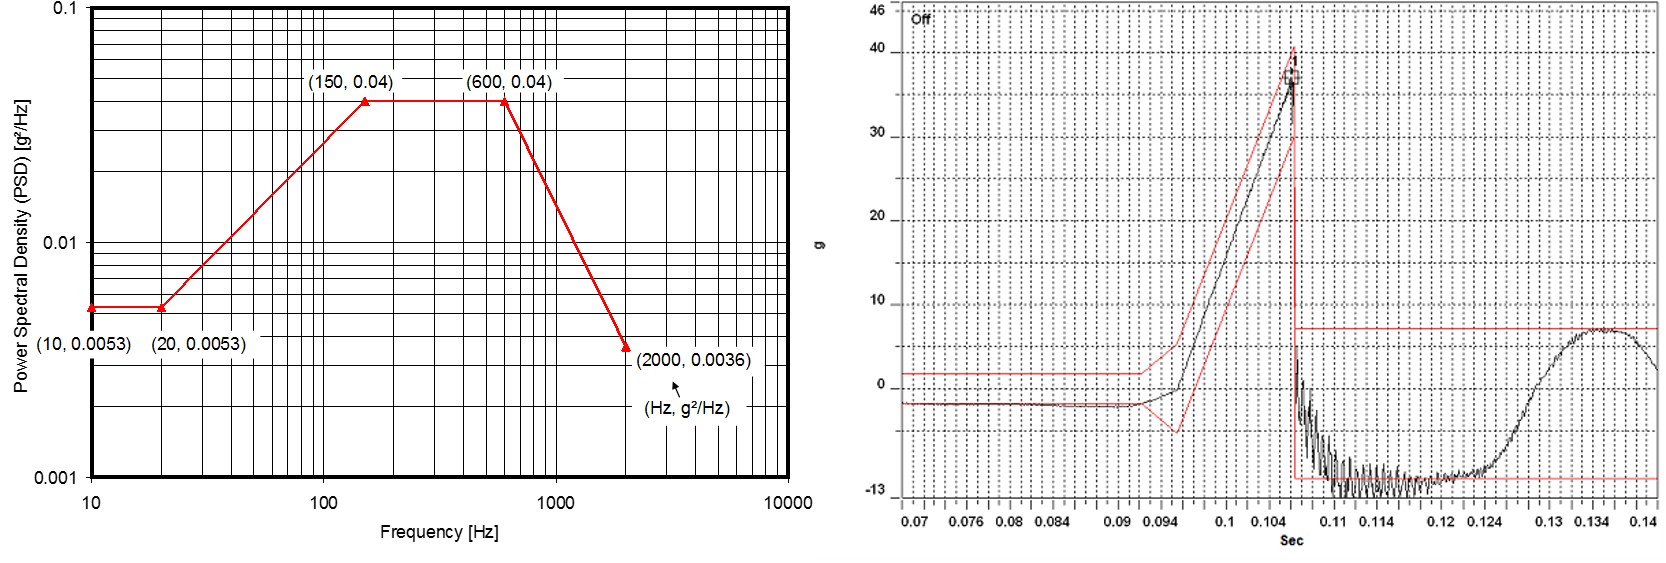 Figure 7 (a) Vibration and (b) Shock Profiles of FSC-Variant Body/Frame Mounted Components